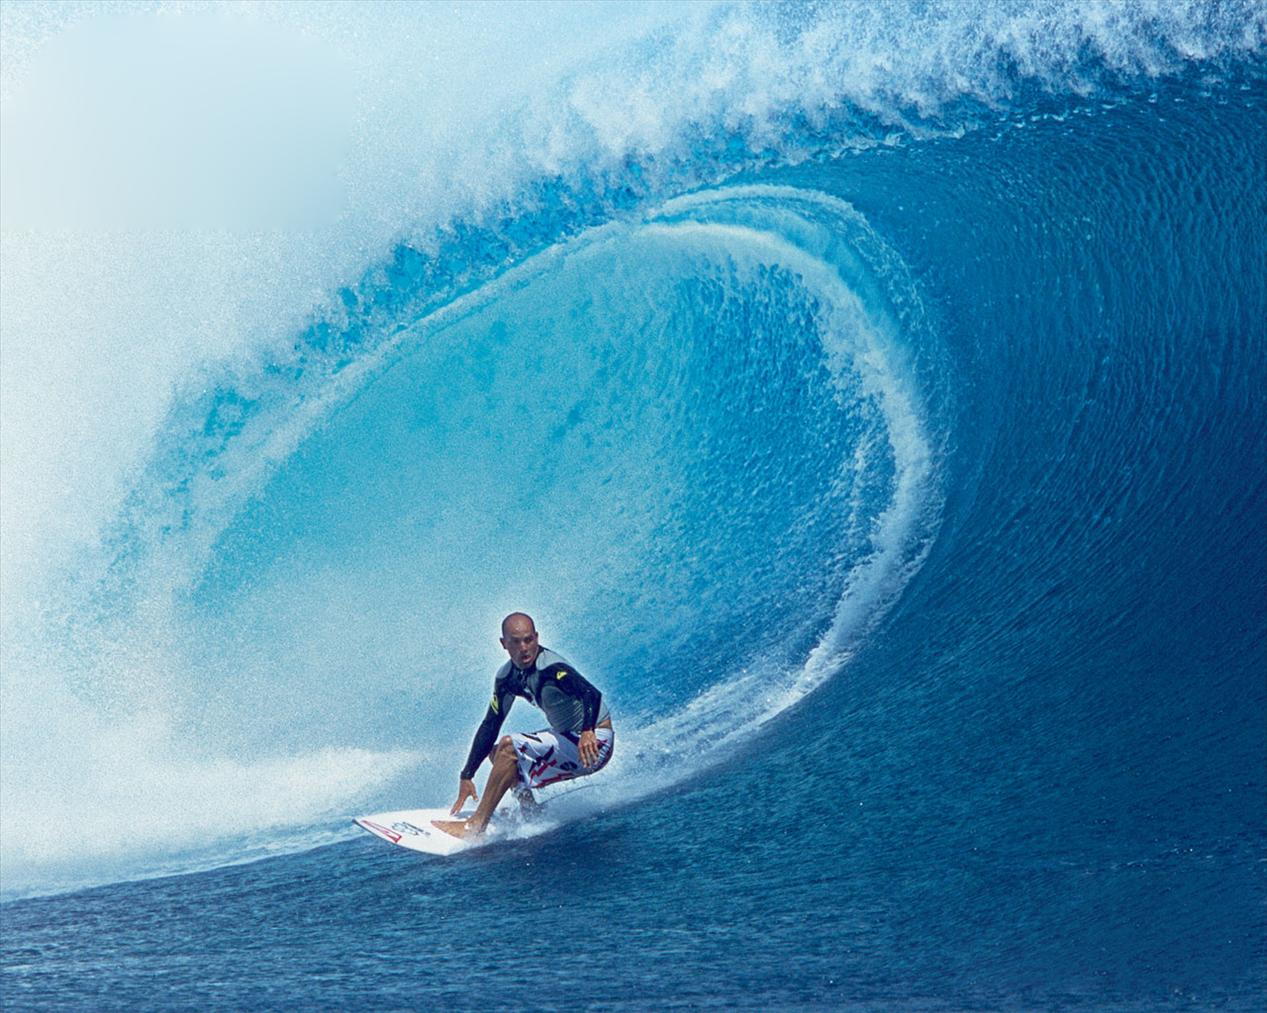 Download Barrel Surfing wallpaper surfing 1267x1013